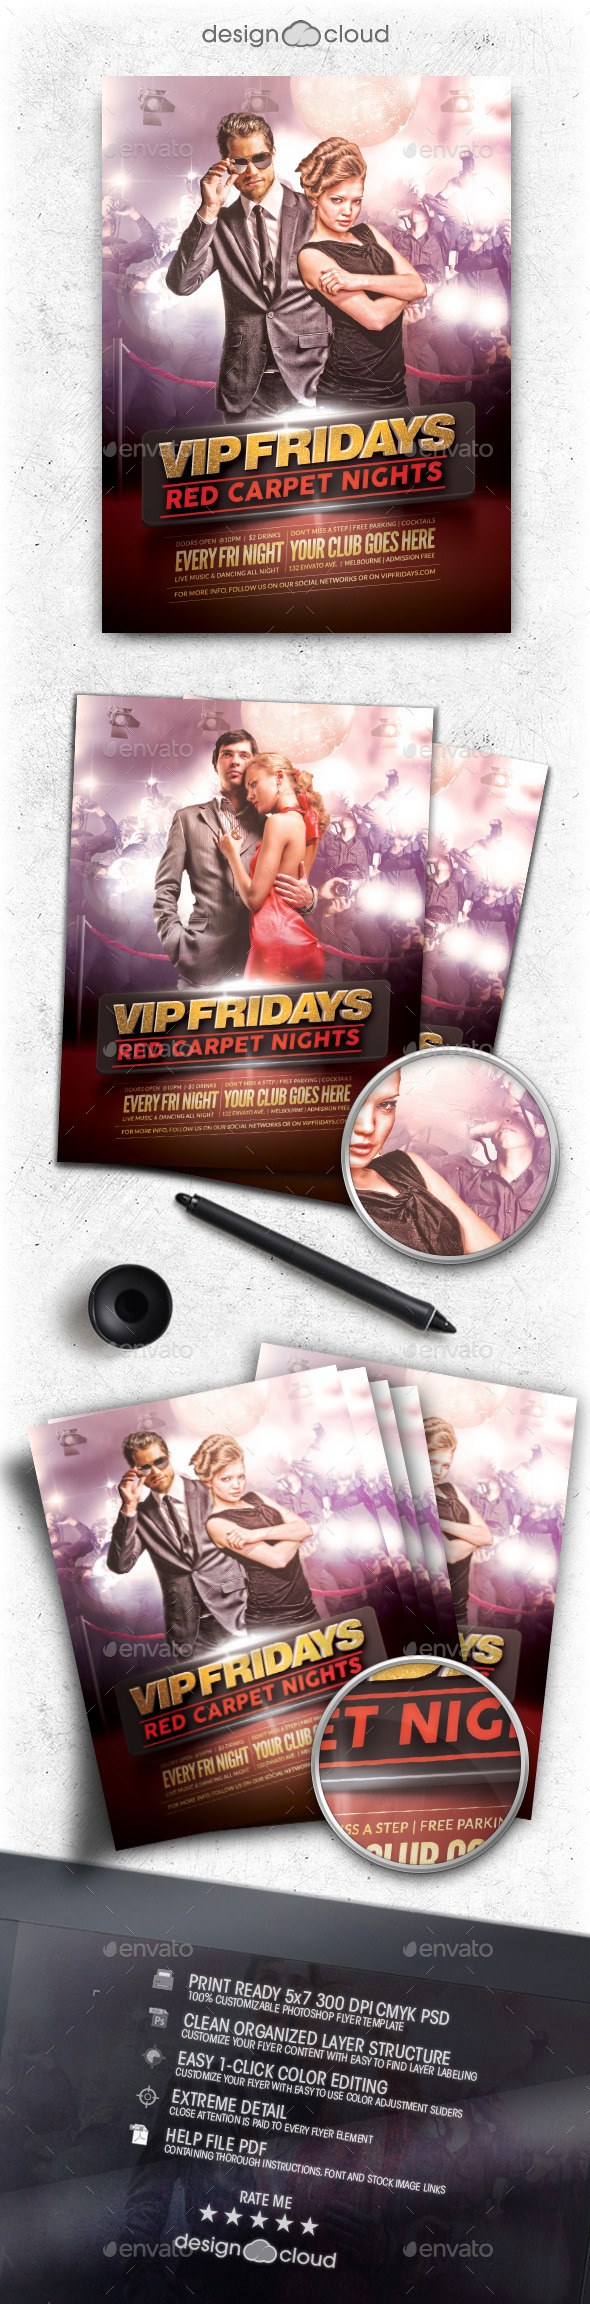 VIP Fridays Red Carpet Nights Flyer Template - Clubs & Parties Events